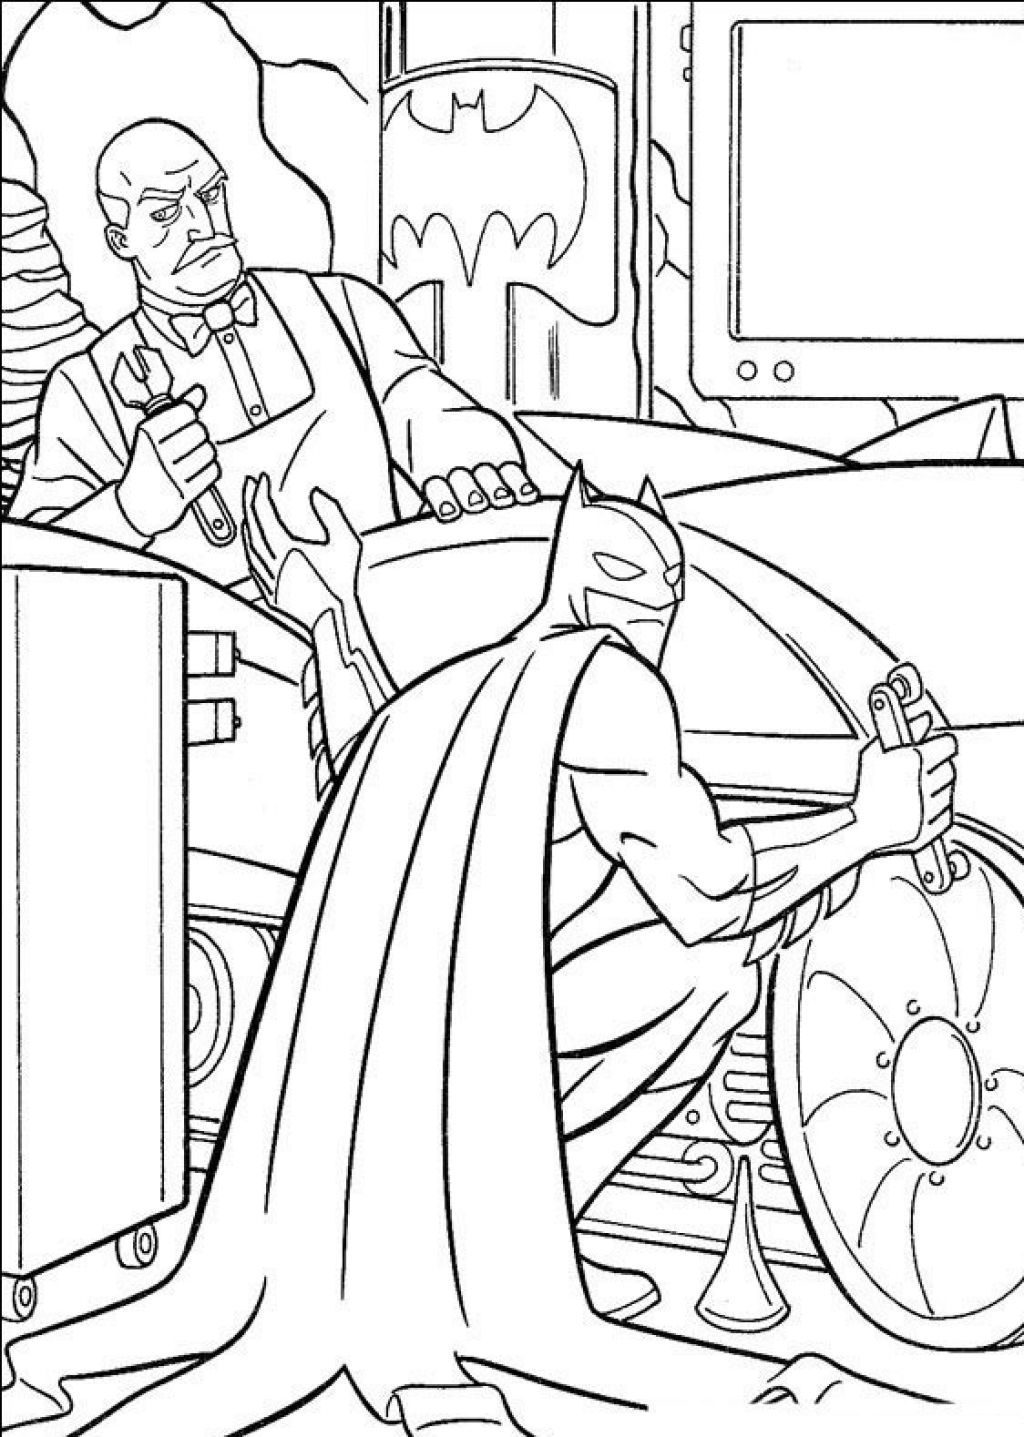 undefined | Batman coloring pages, Coloring pages ...